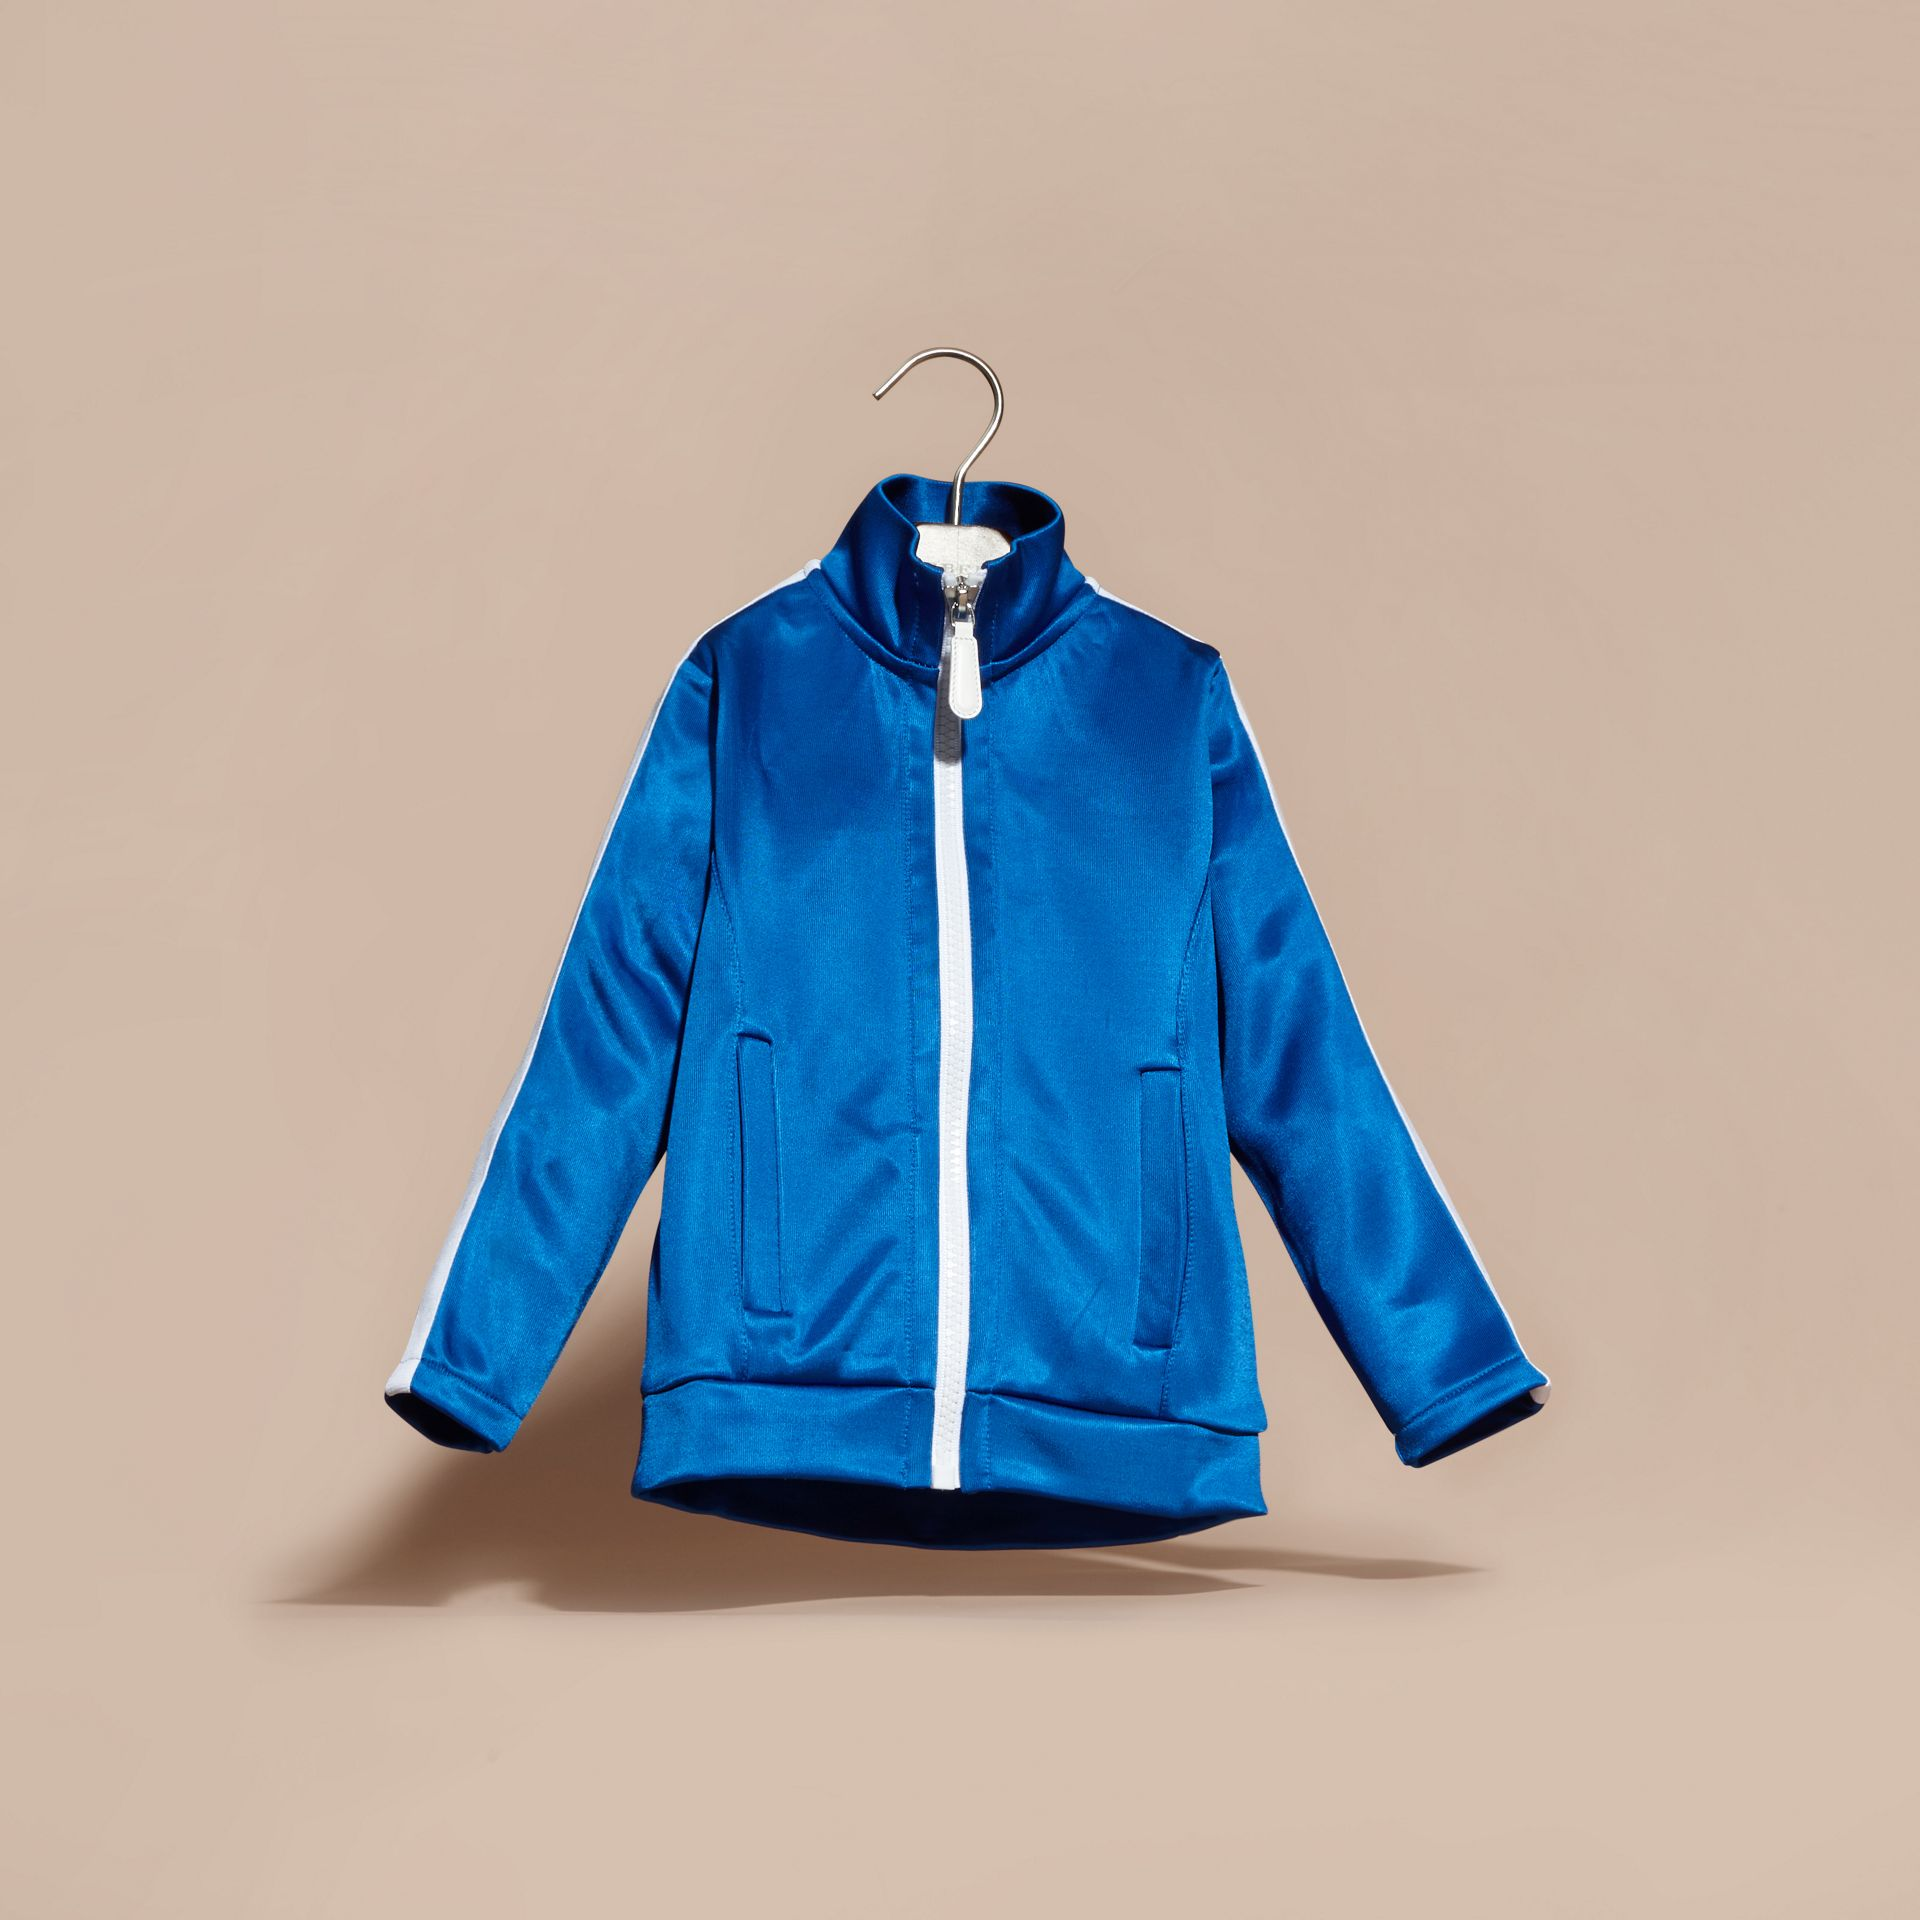 High-shine Technical Track Jacket in Atlantic Blue - gallery image 3